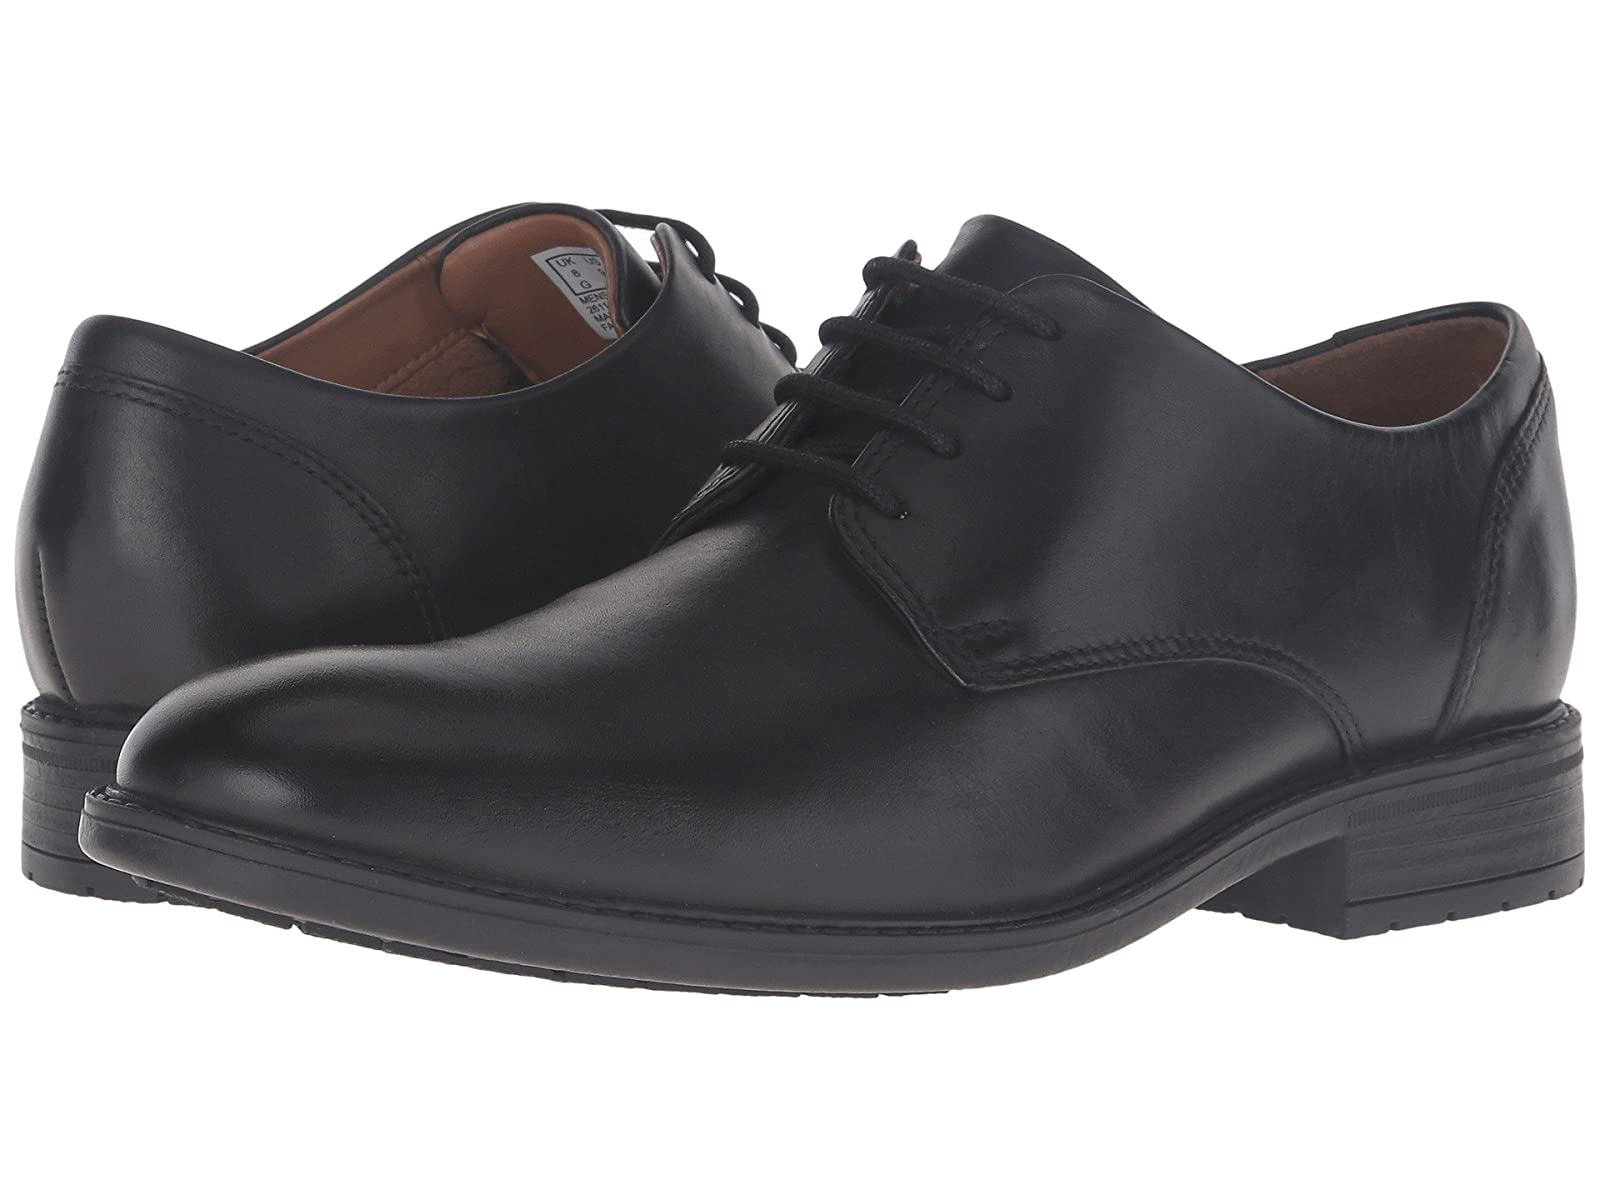 Clarks Truxton PlainCheap and distinctive eye-catching shoes